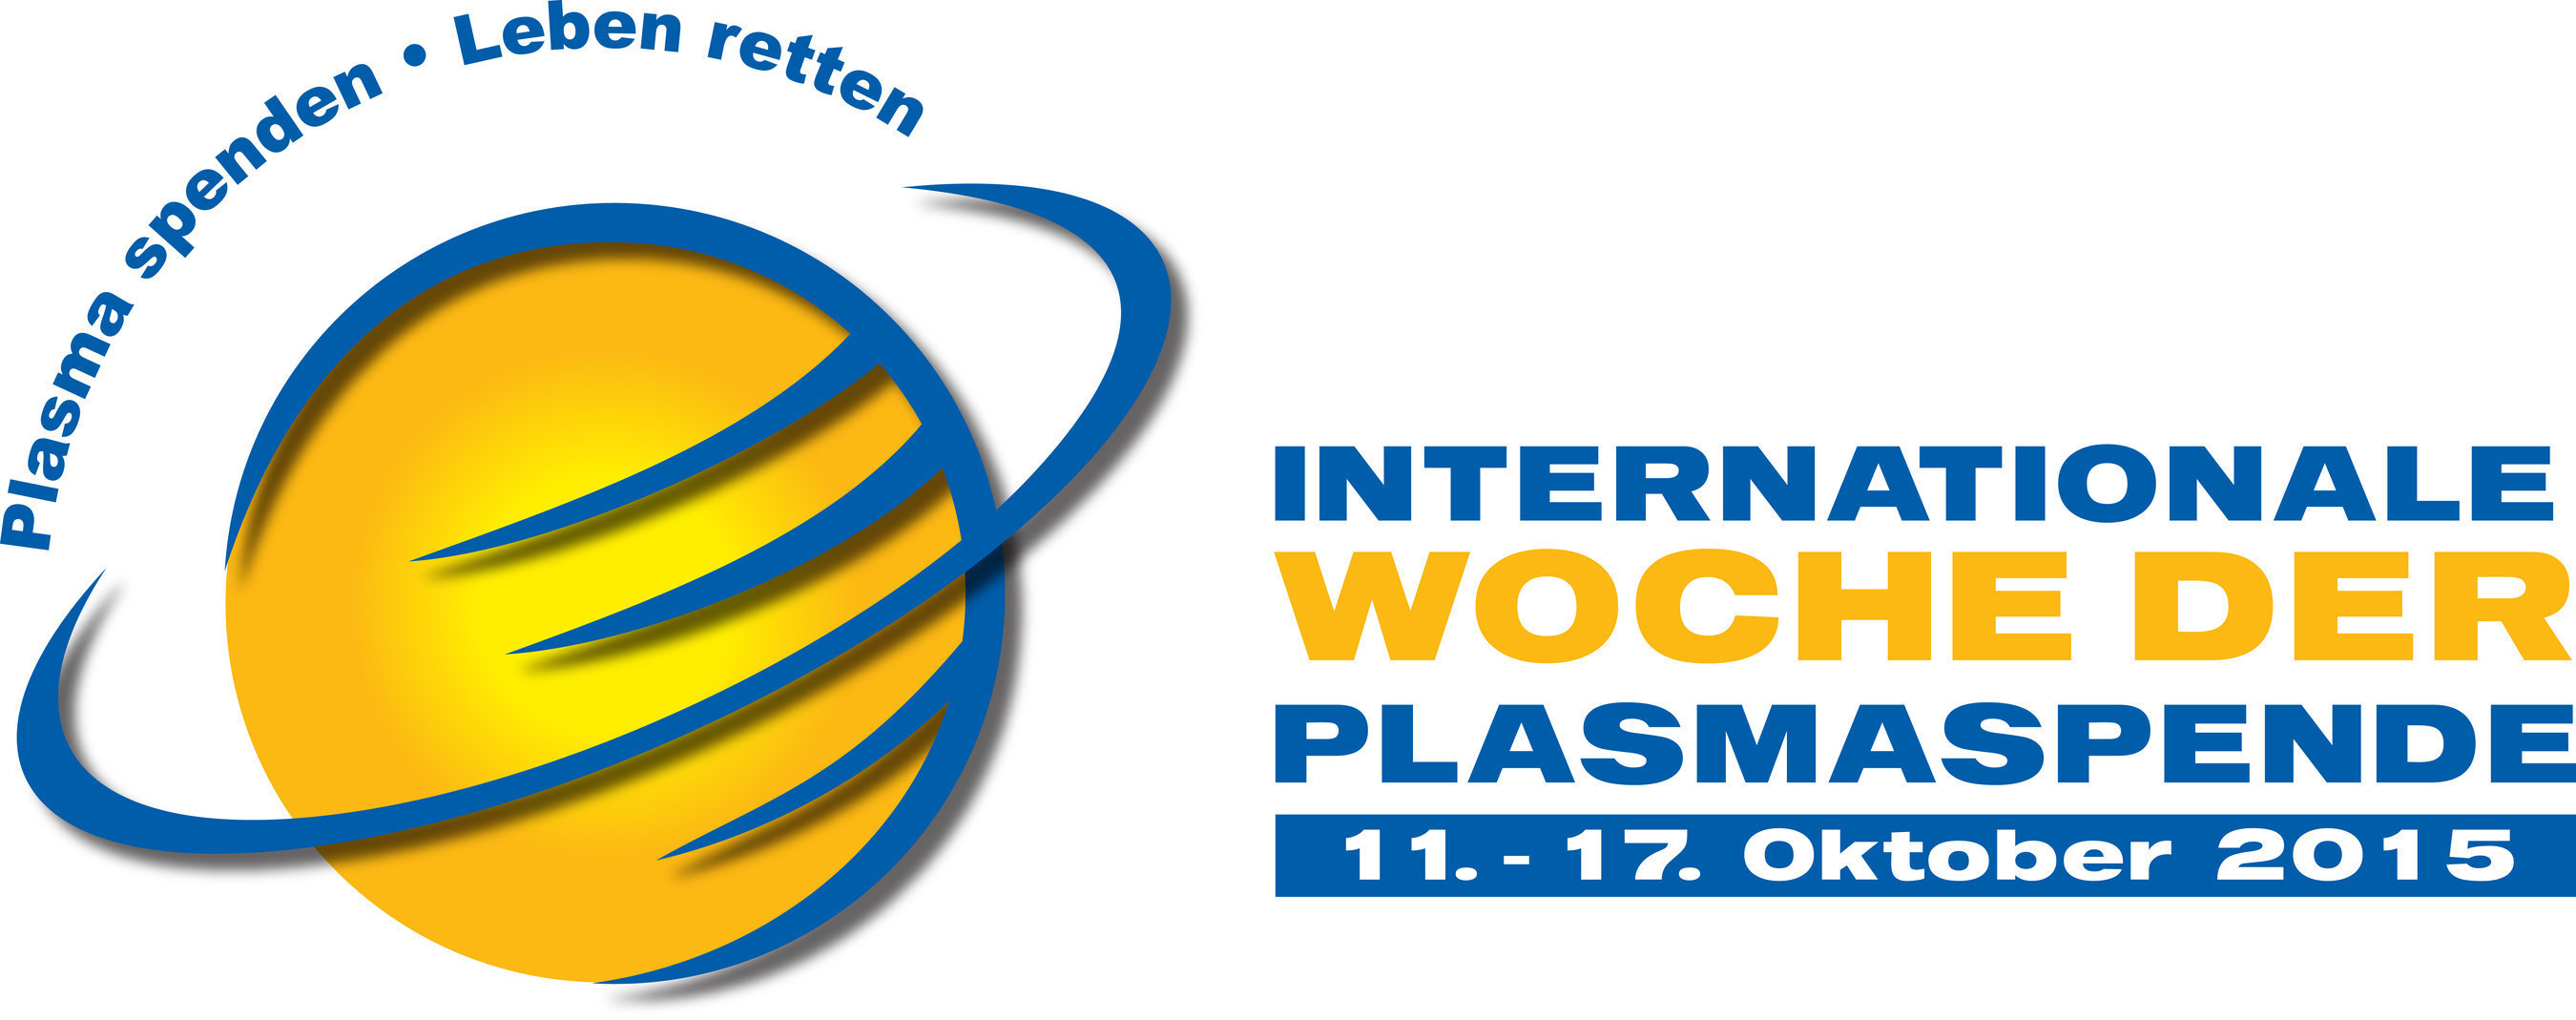 3. Internationale Woche der Plasmaspende